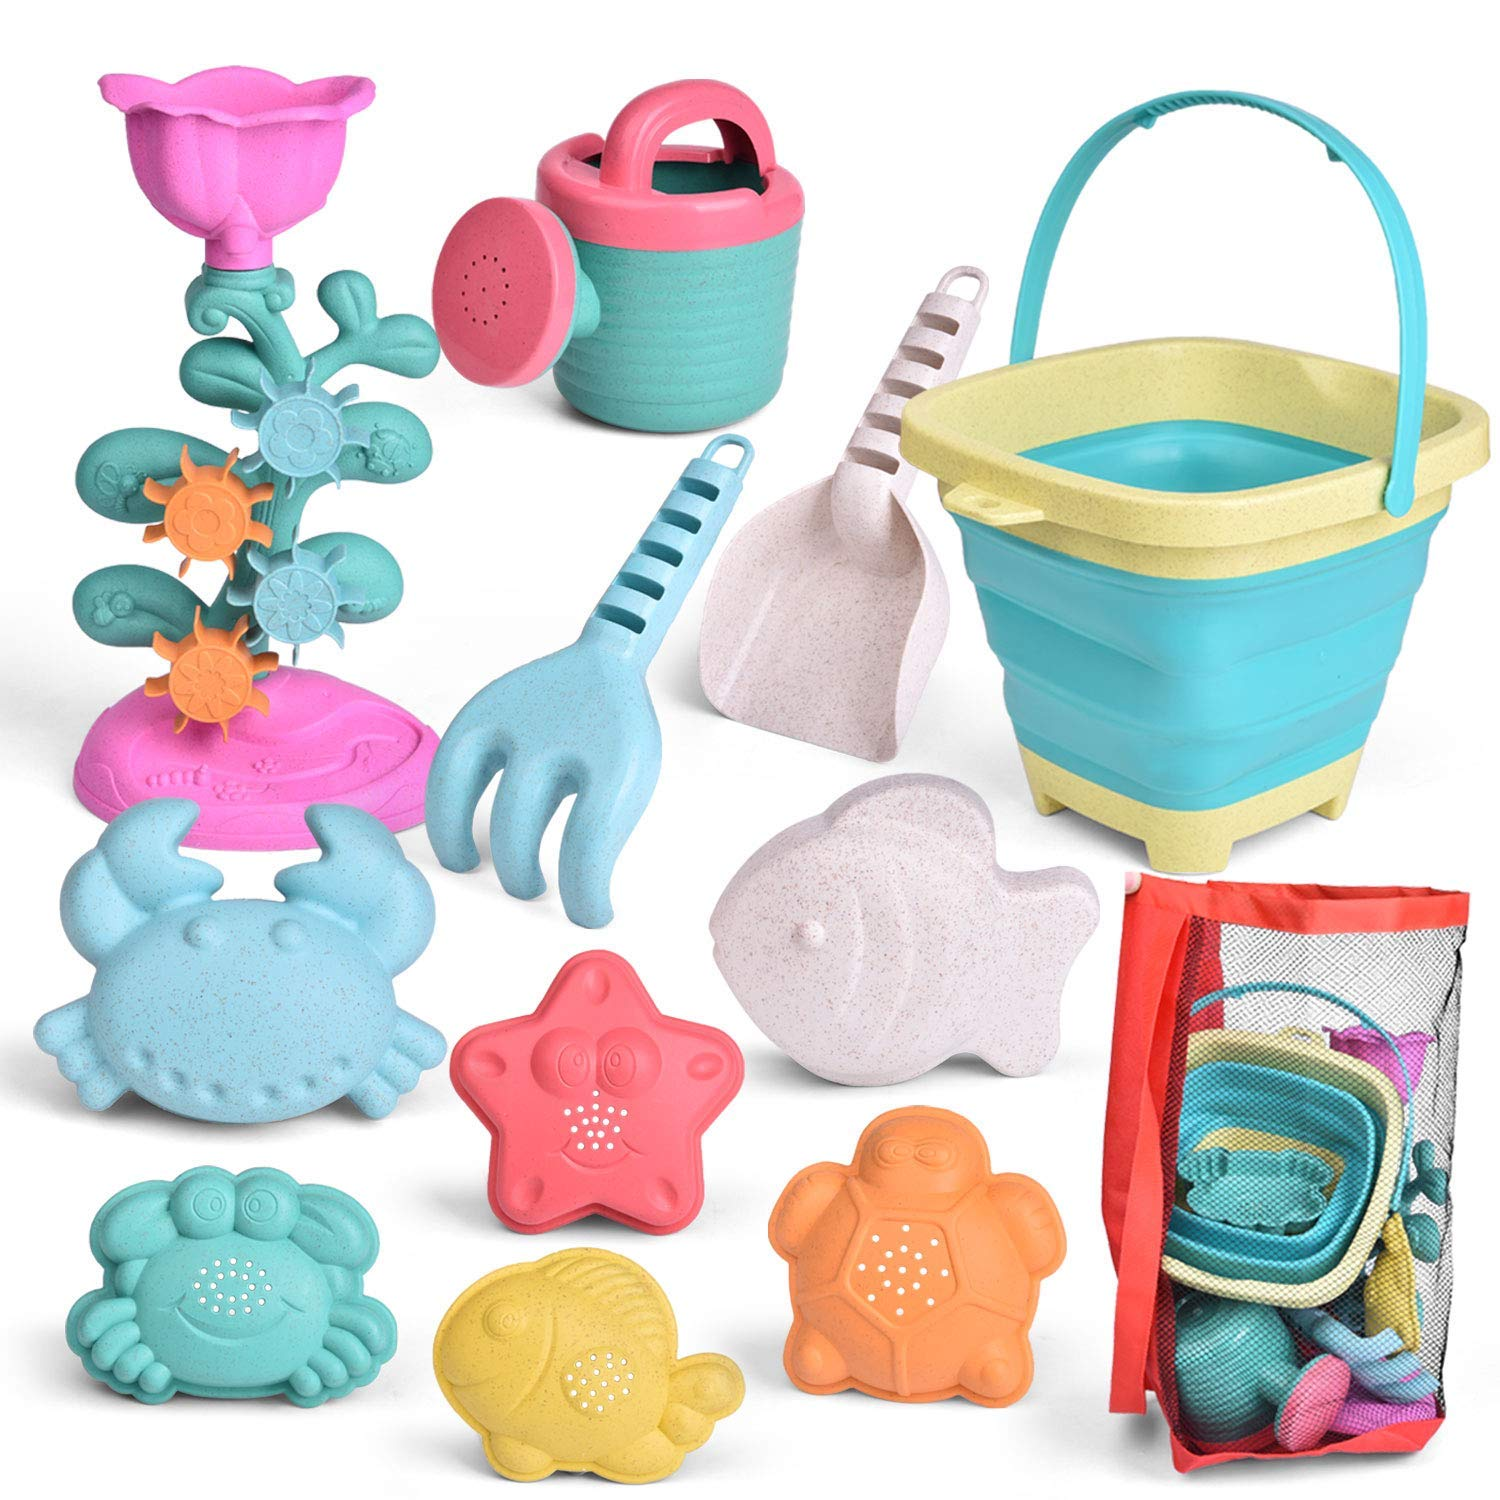 FUN LITTLE TOYS Kids Beach Sand Toy Set, Foldable Beach Bucket, Water Wheel, Watering Can, Shovel, Rake, Sand Molds and Mesh Bag, Eco-Friendly Sandbox Toys Kids Outdoor Toys 12 Piece